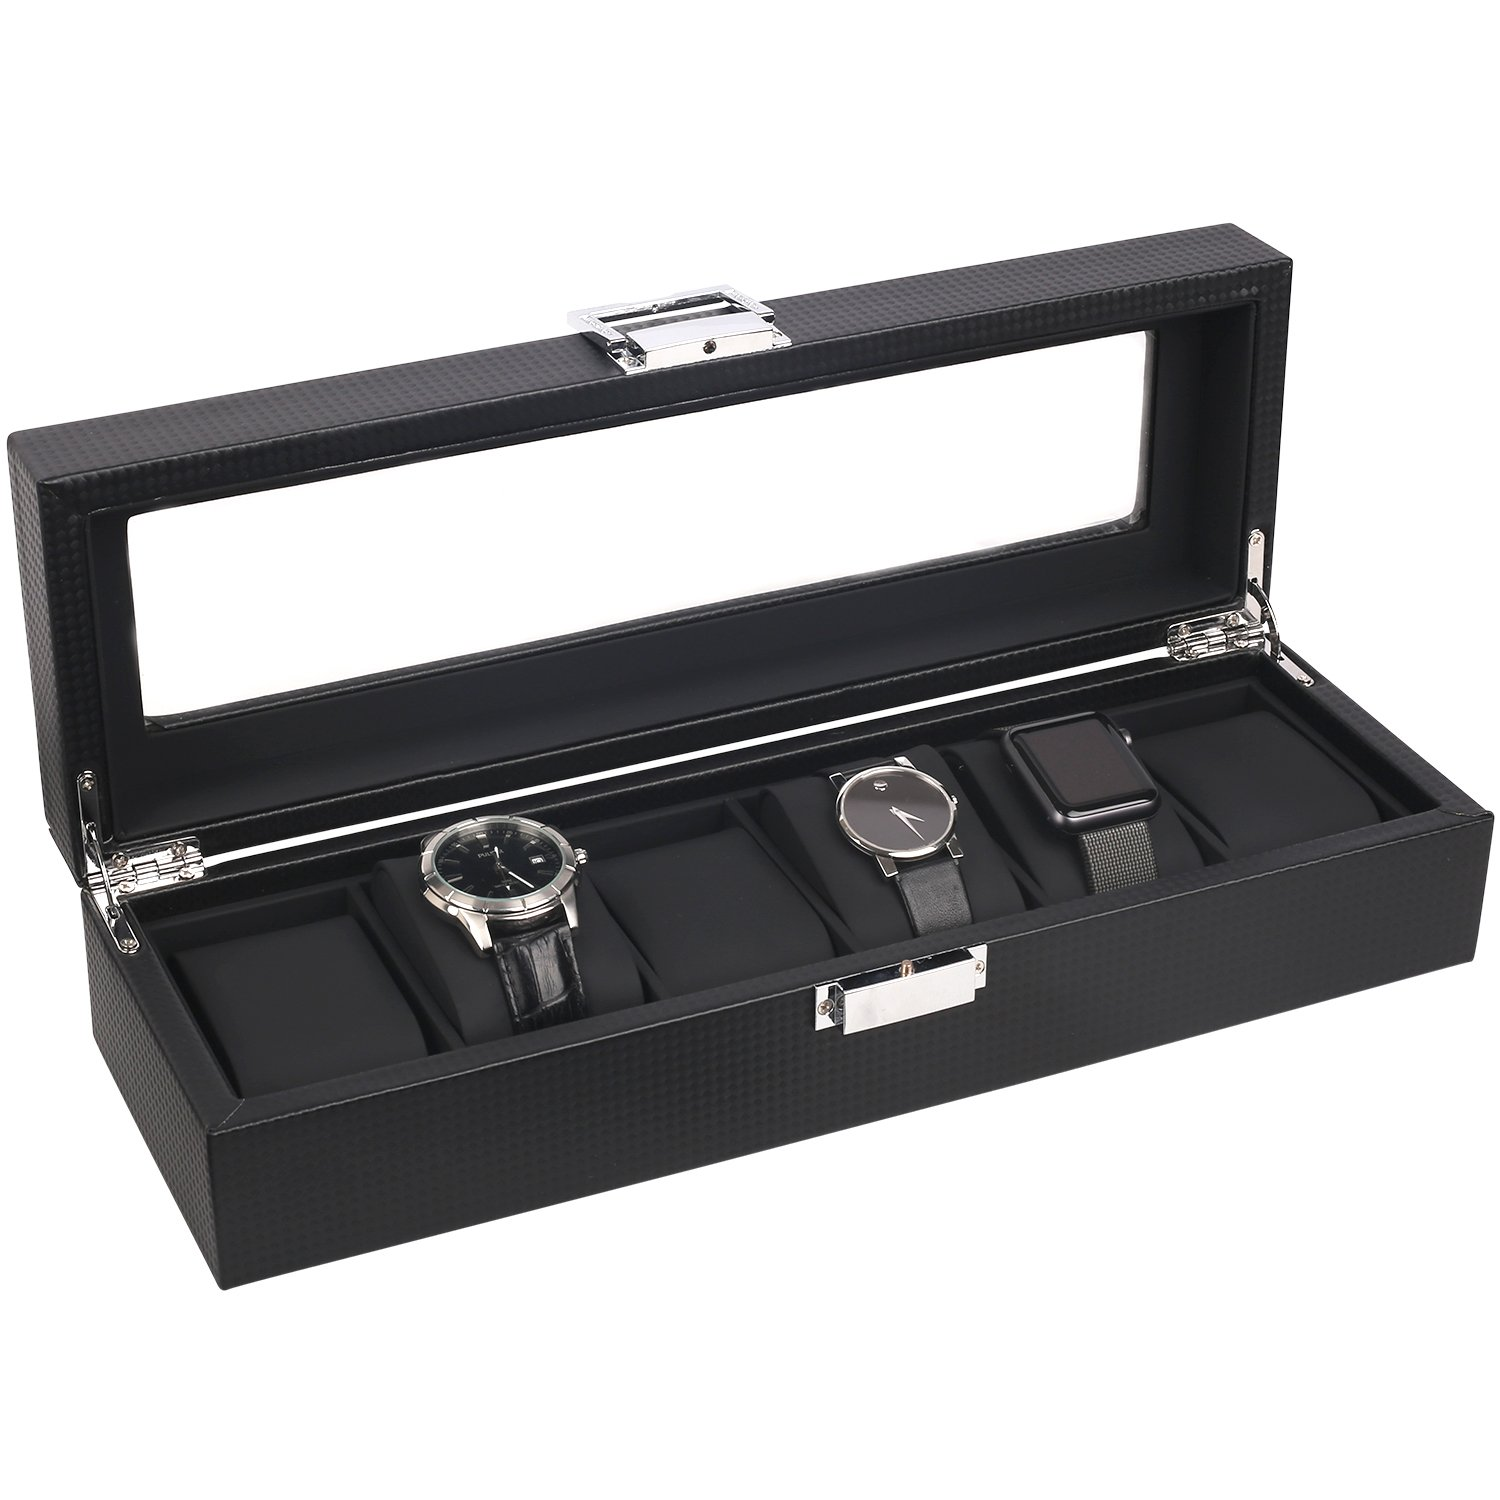 Mantello 6-Watch Box Carbon Fiber Design with Glass Top by Mantello